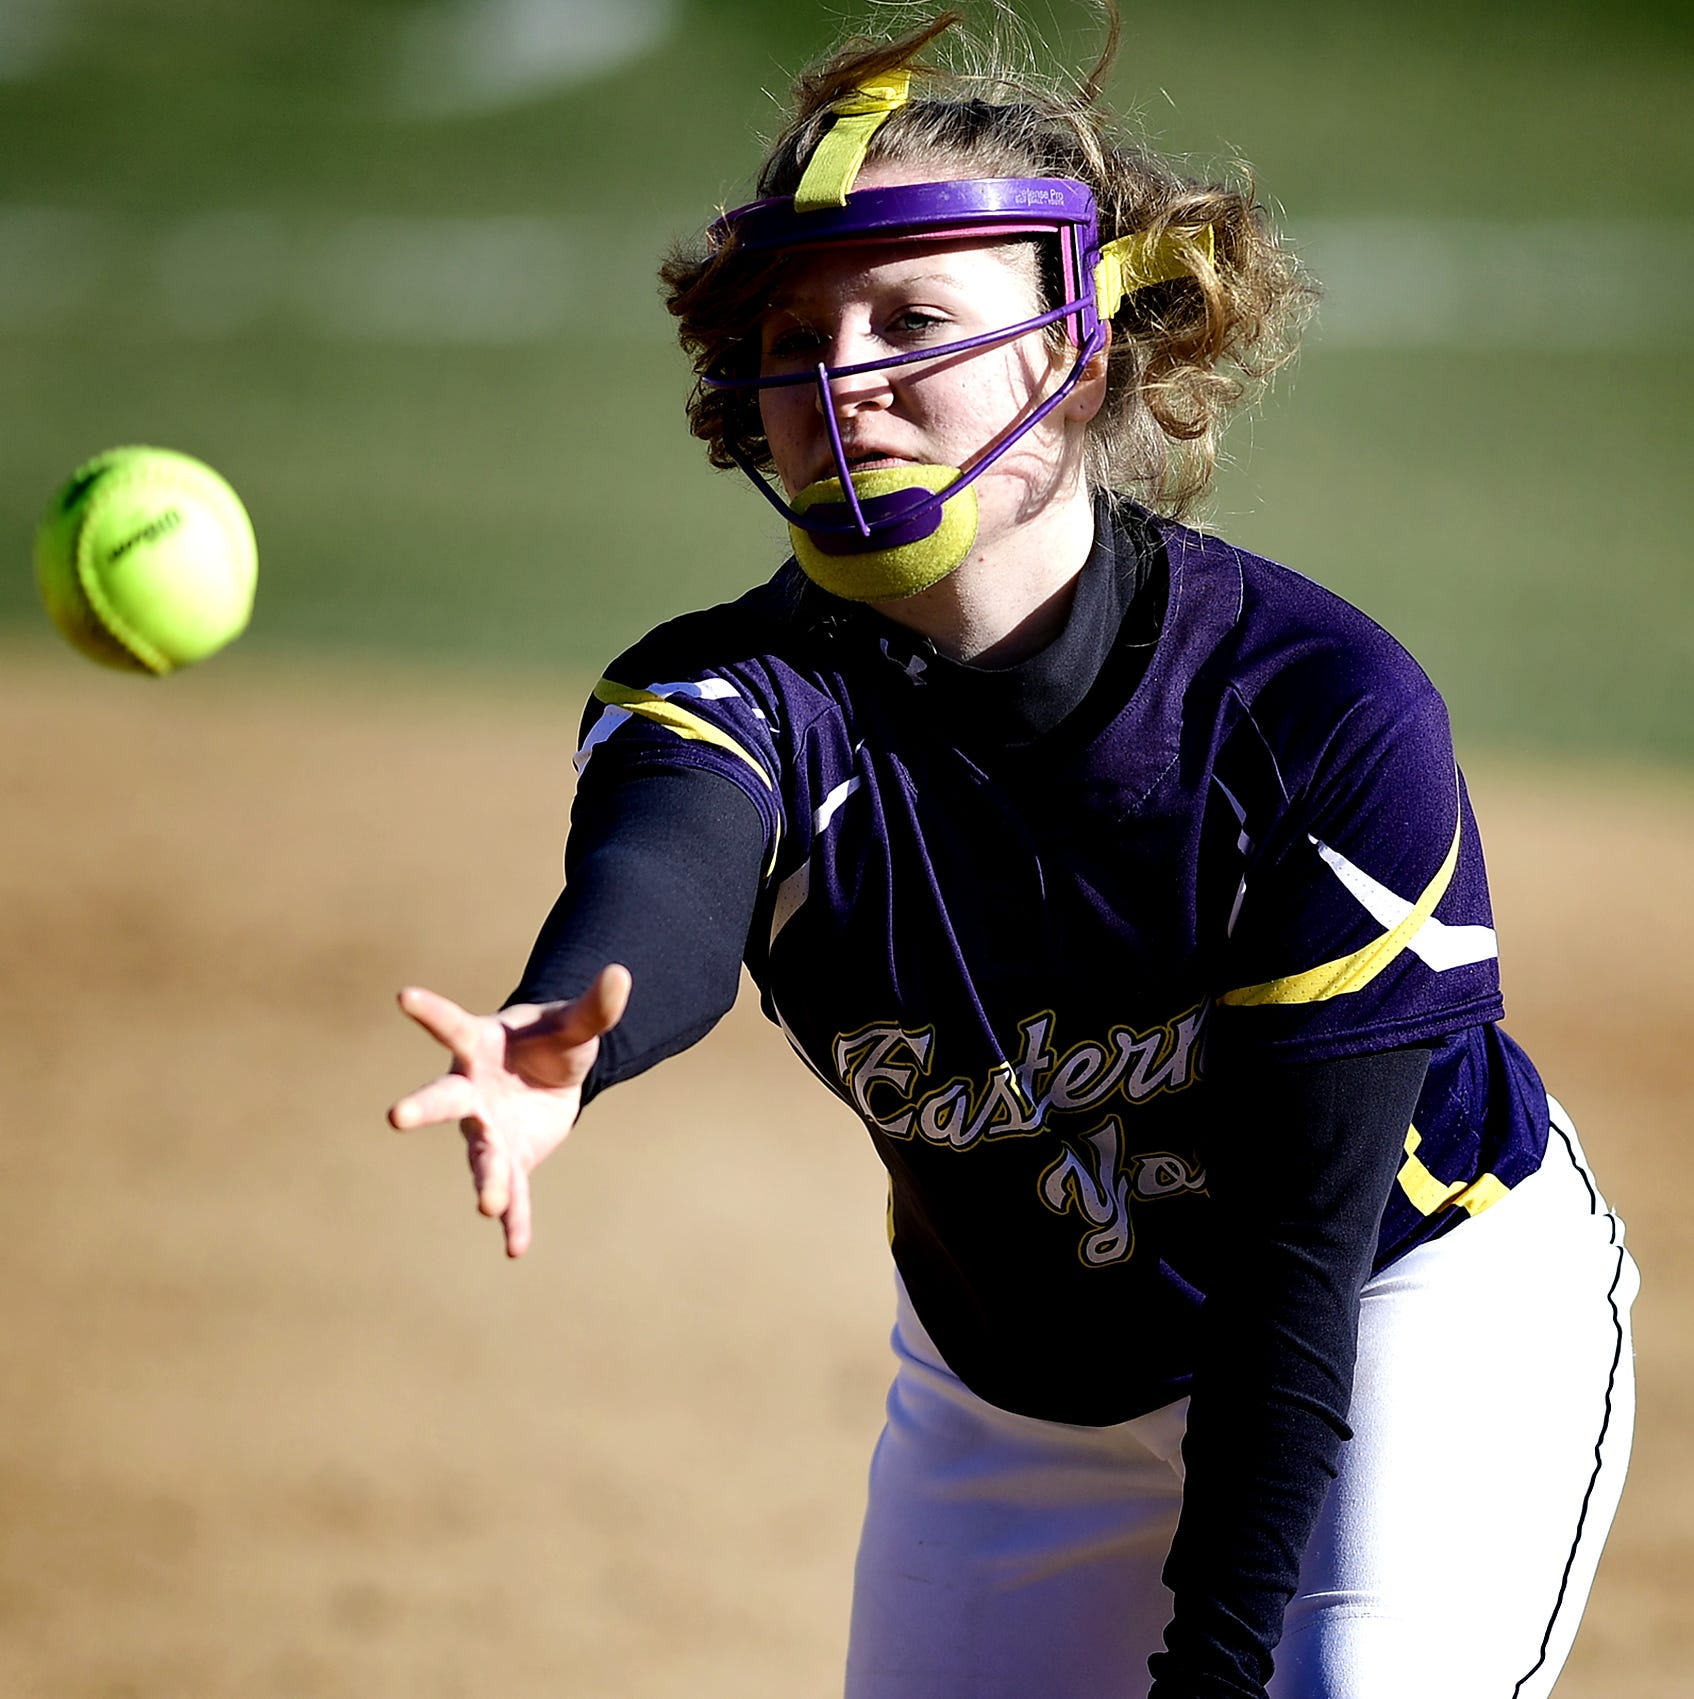 Area softball coaches, players debate need for protective masks for infielders, pitchers